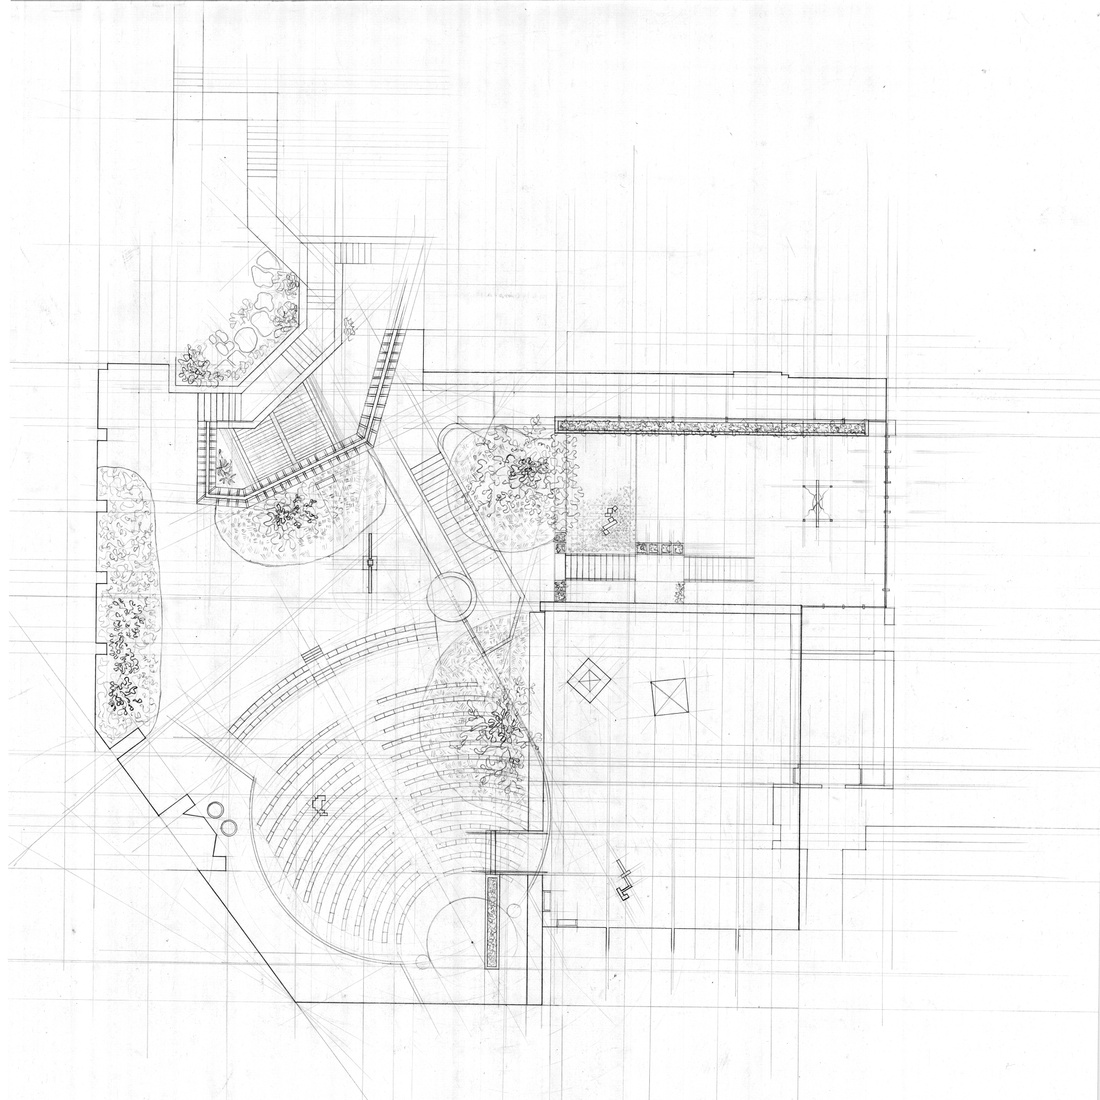 Plan drawing by Erin Hyelin Kim.